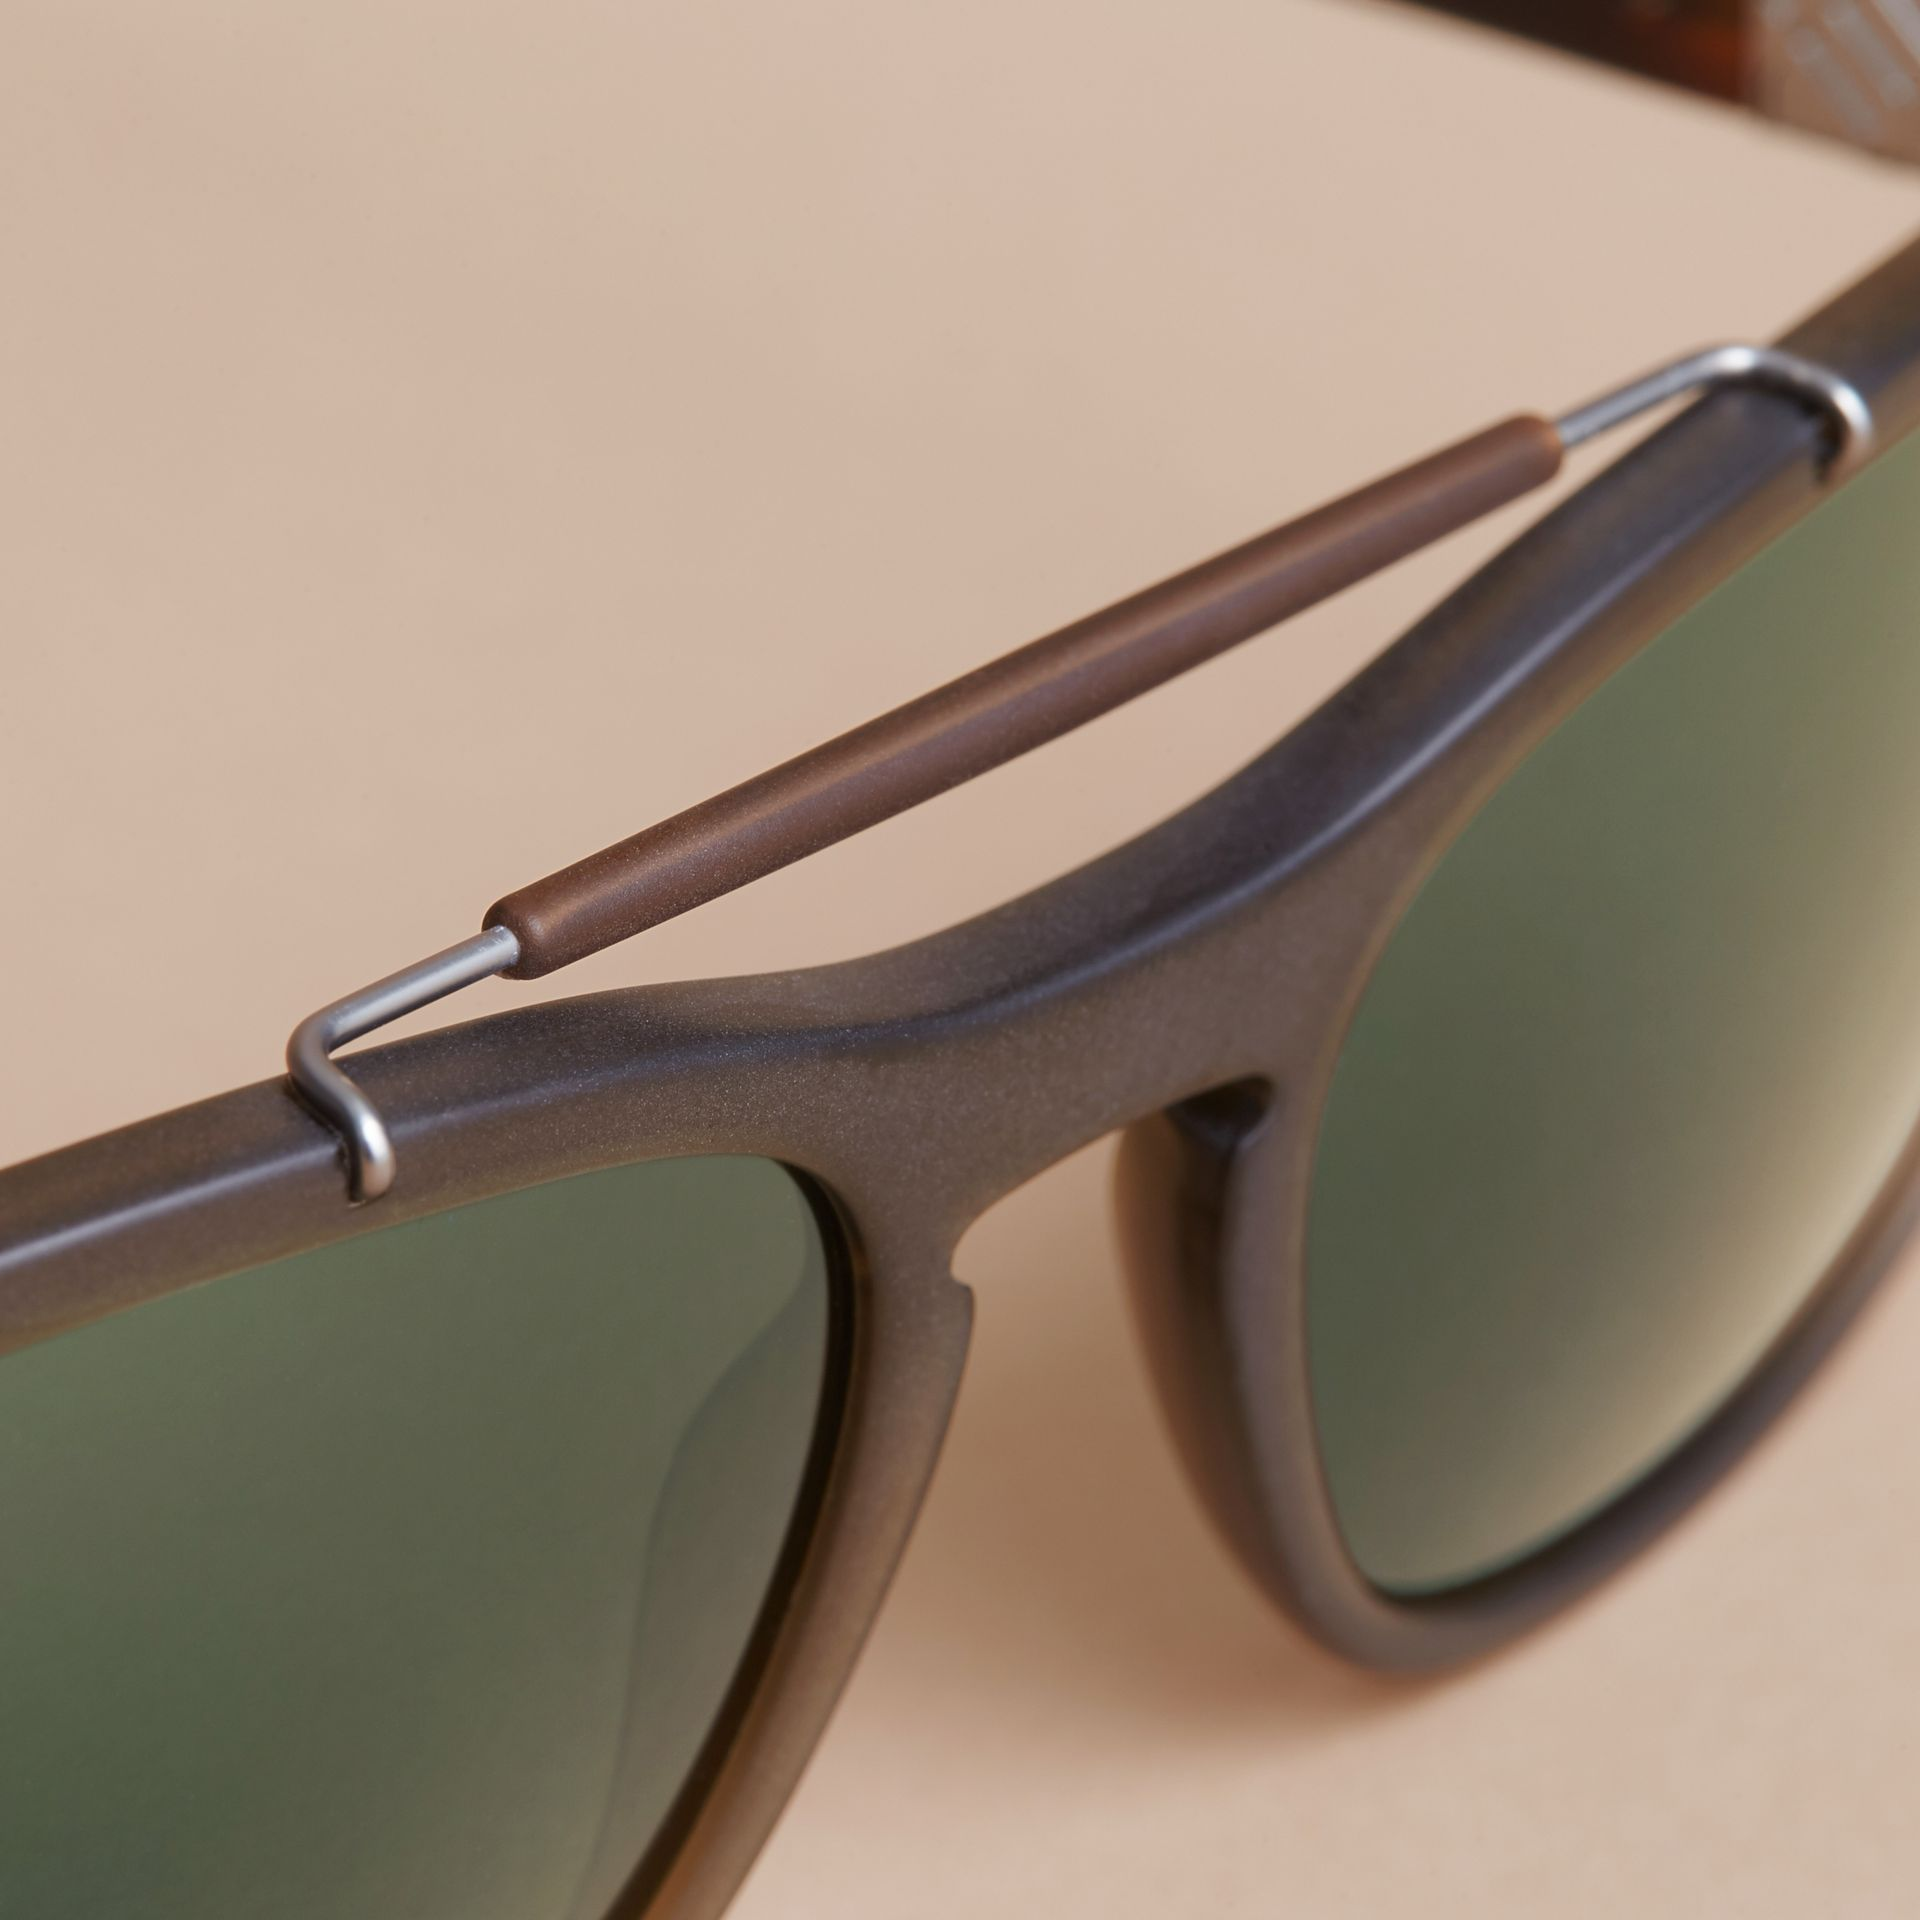 Top Bar Square Frame Sunglasses in Olive - Men | Burberry United States - gallery image 1